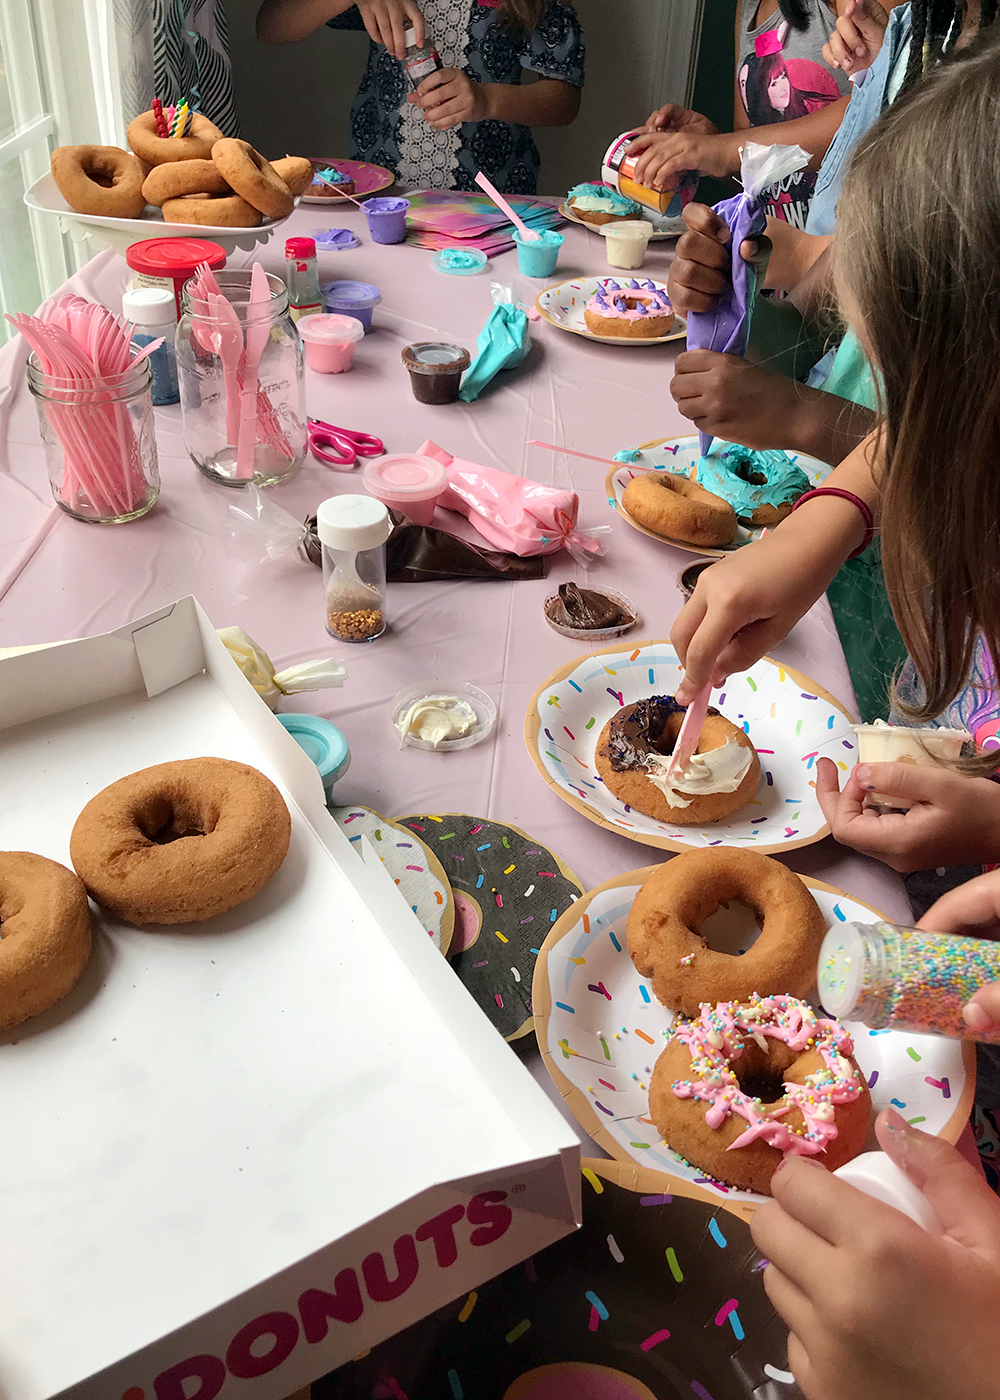 a fun donut decorating party #birthdayparty #donutparty #kidsparty